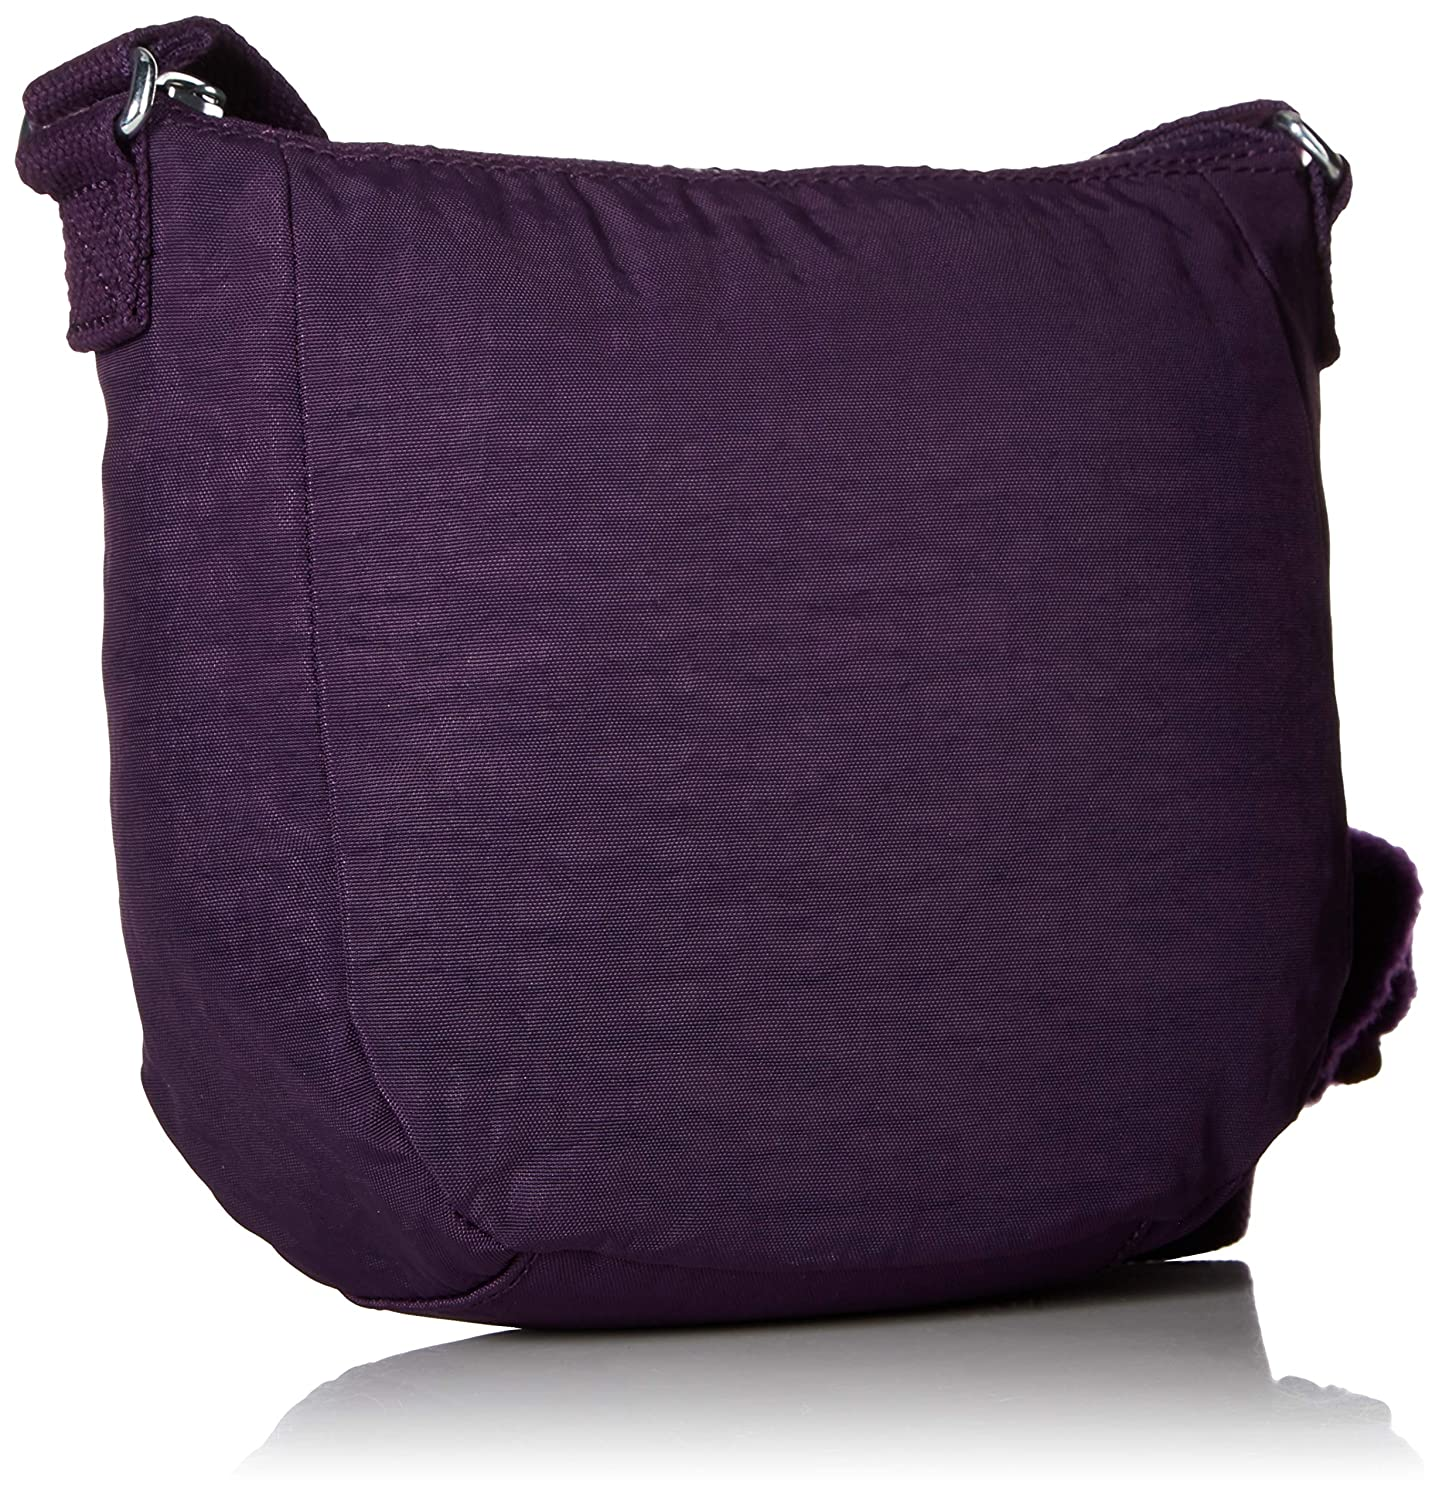 35ee297c0a6 Kipling Bailey Extra Small Solid Minibag, Deep Purple: Amazon.co.uk:  Clothing